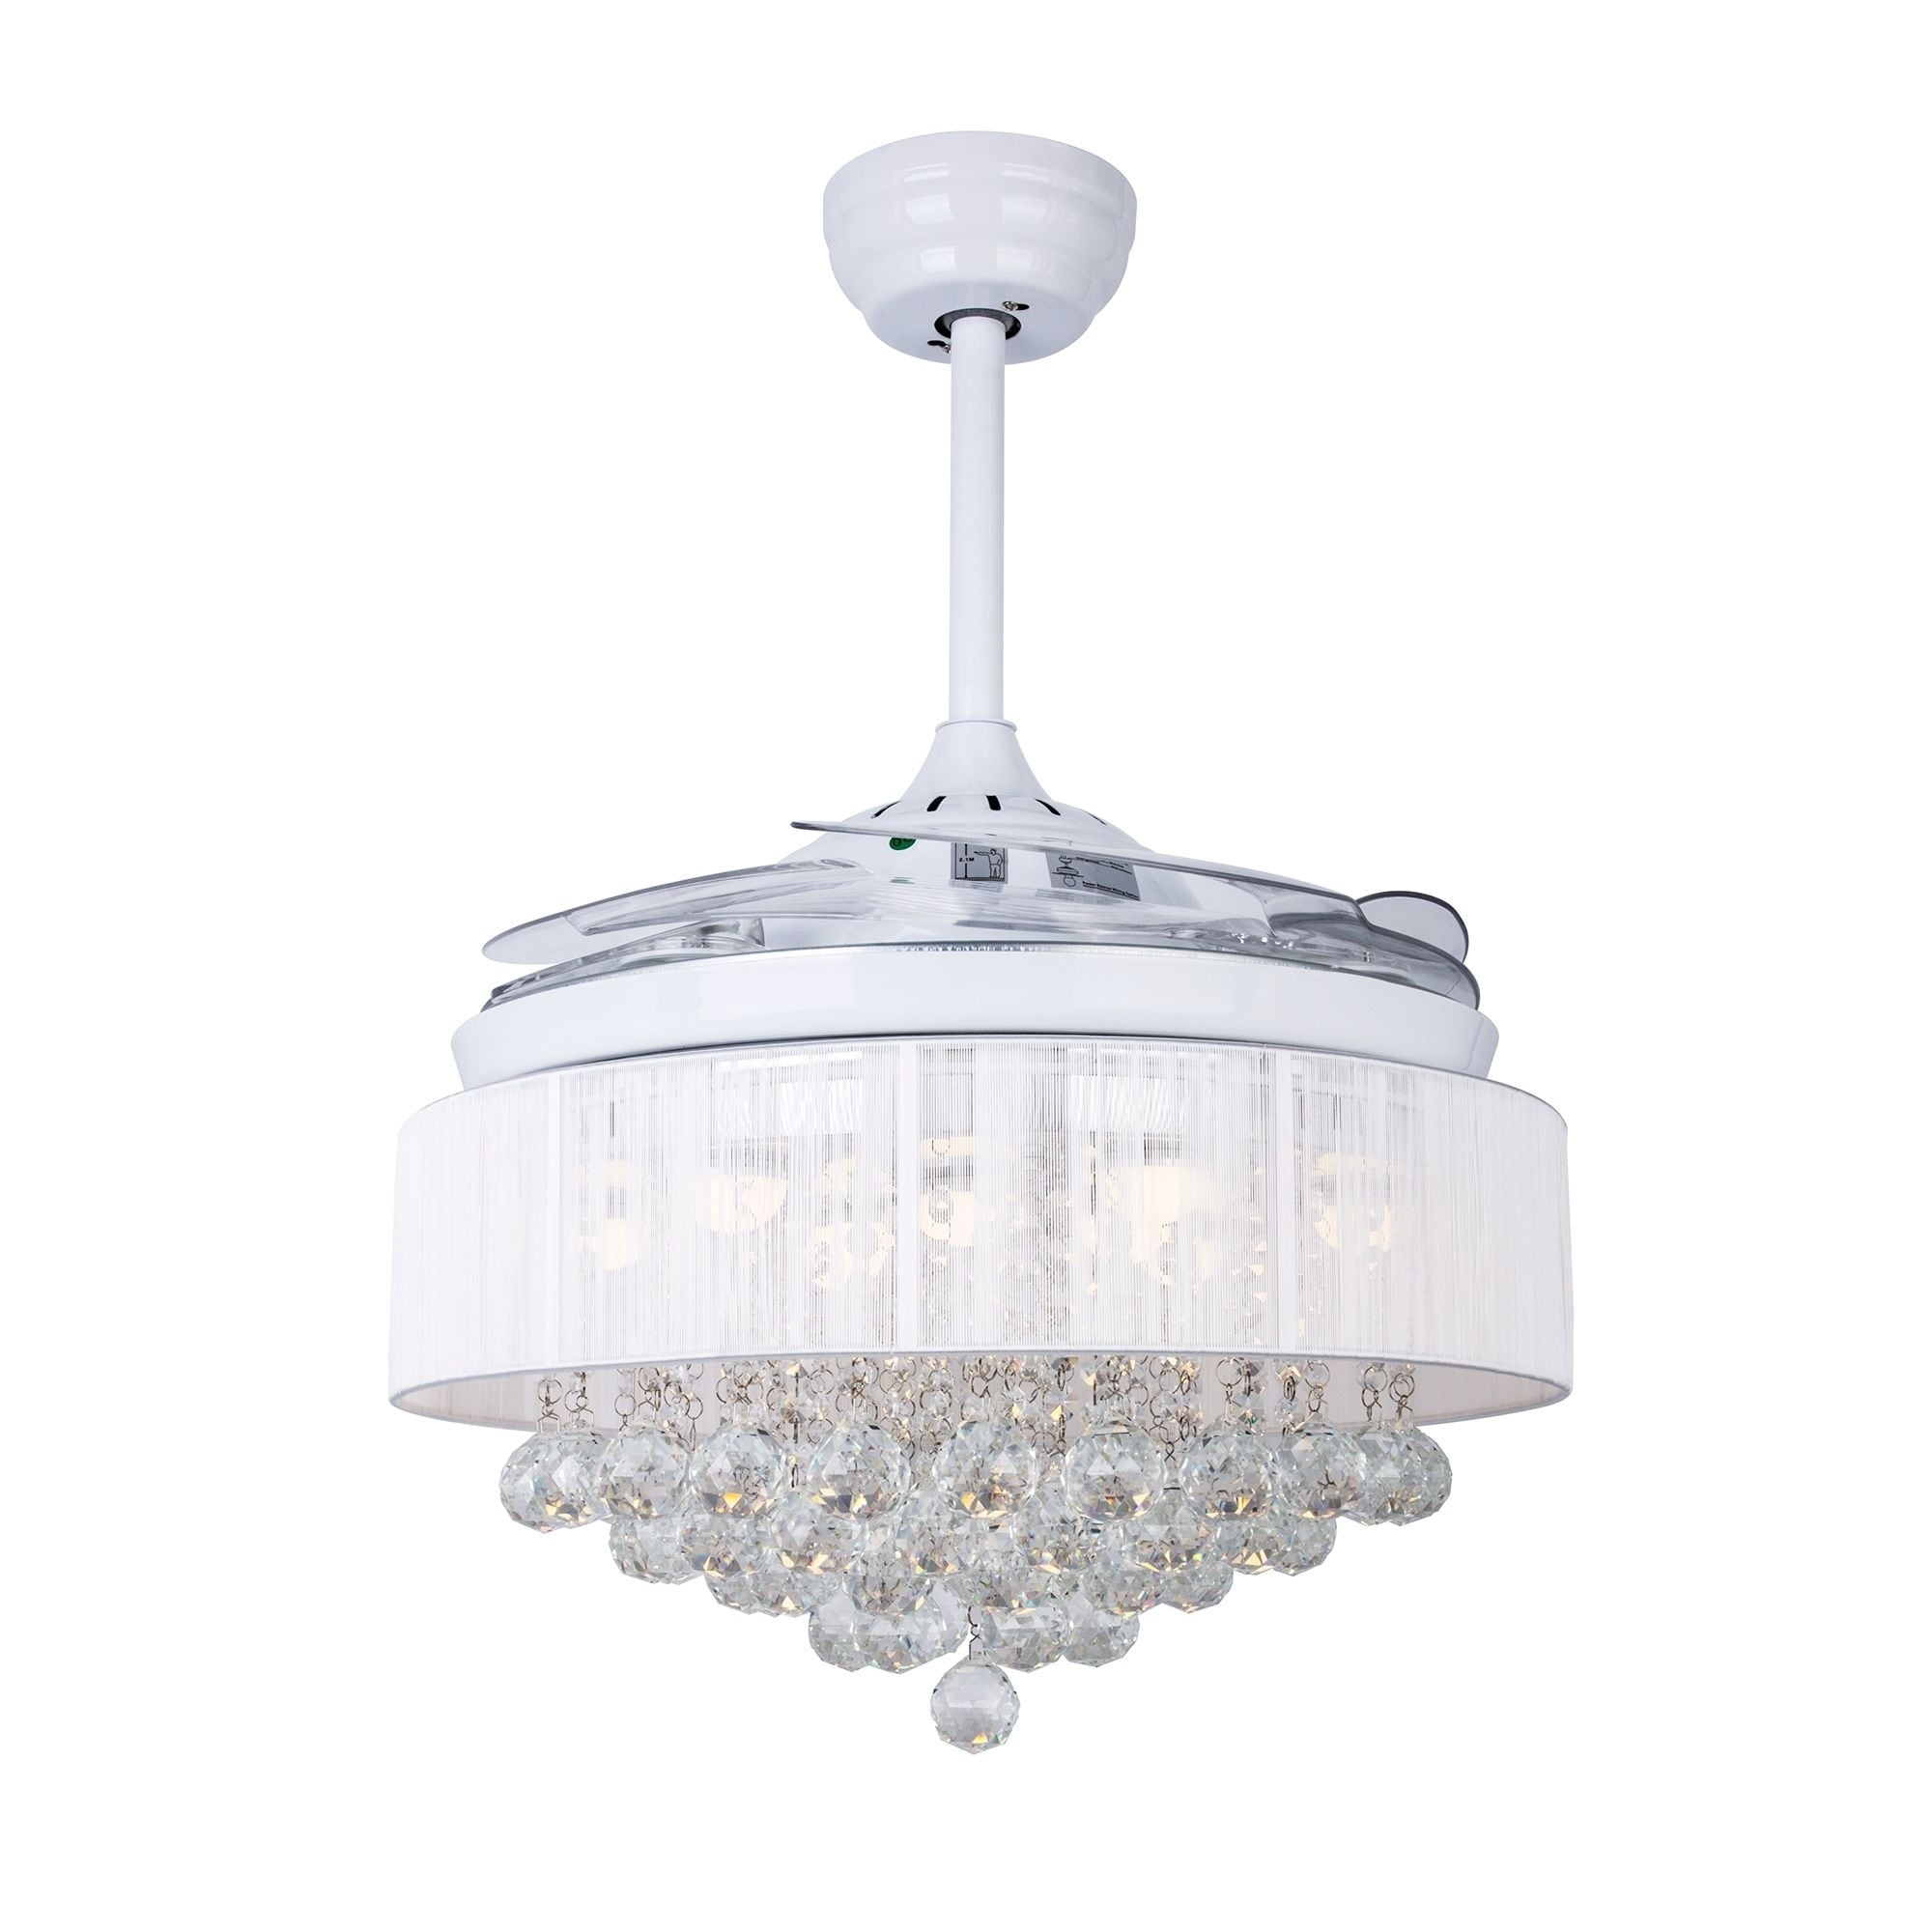 42 inch foldable 4 blades led ceiling fan crystal chandelier free 42 inch foldable 4 blades led ceiling fan crystal chandelier free shipping today overstock 24247568 arubaitofo Images